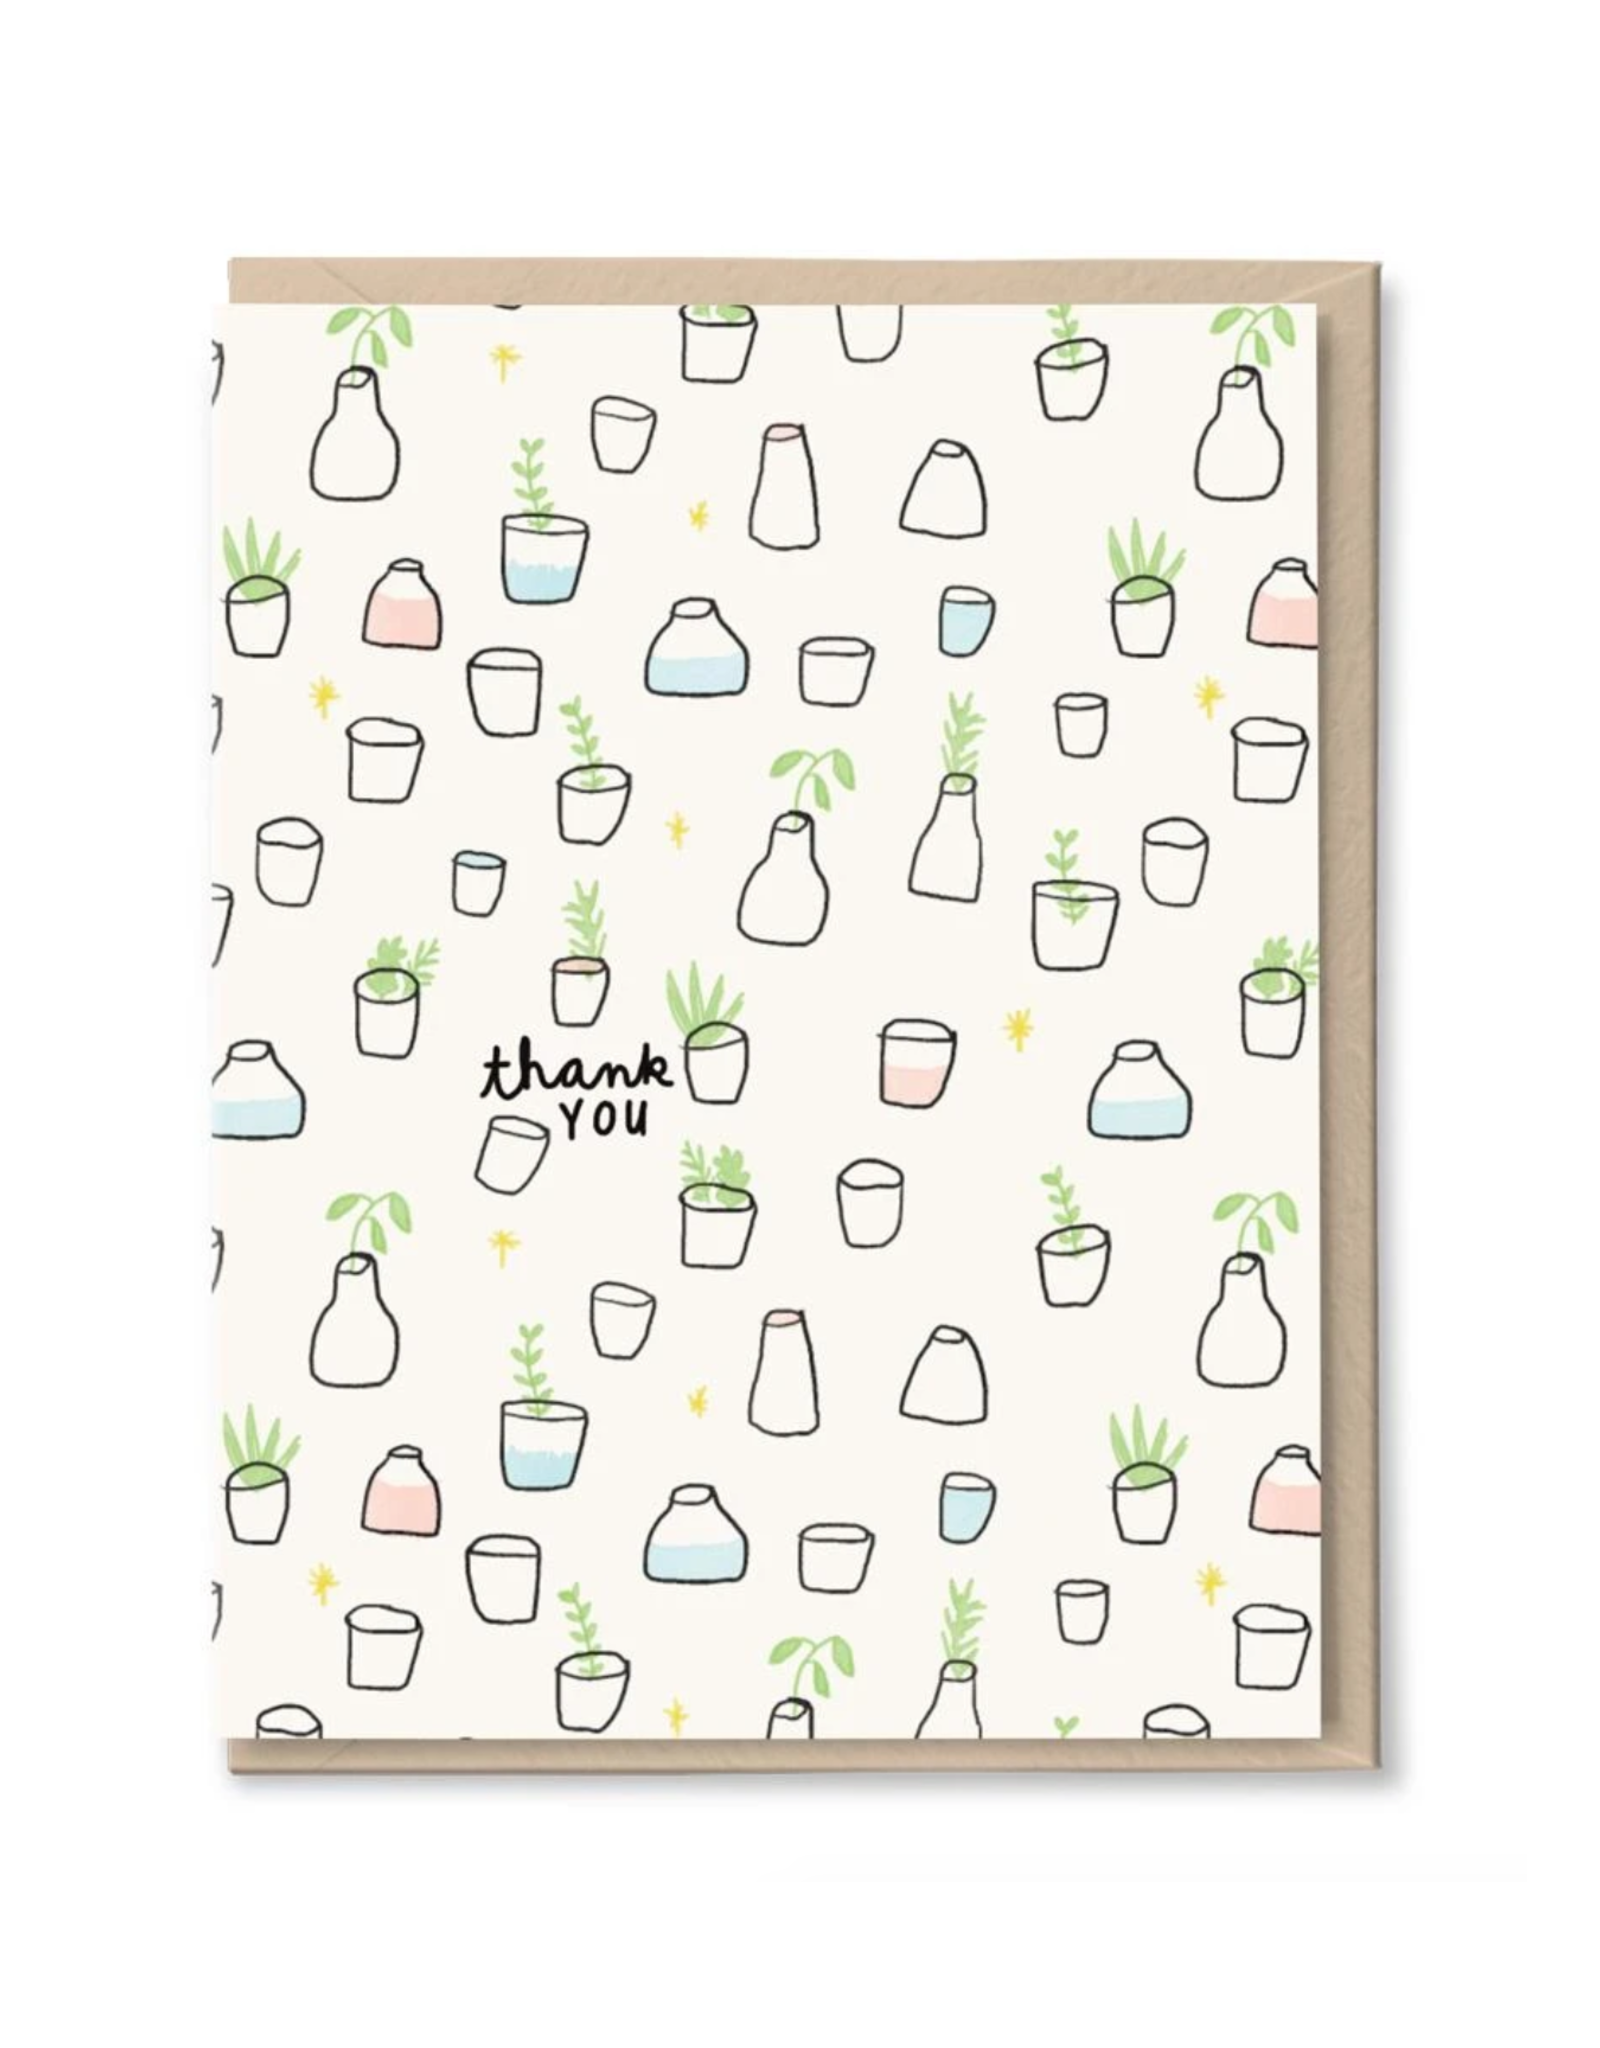 Thank You Plants in Jars Greeting Card